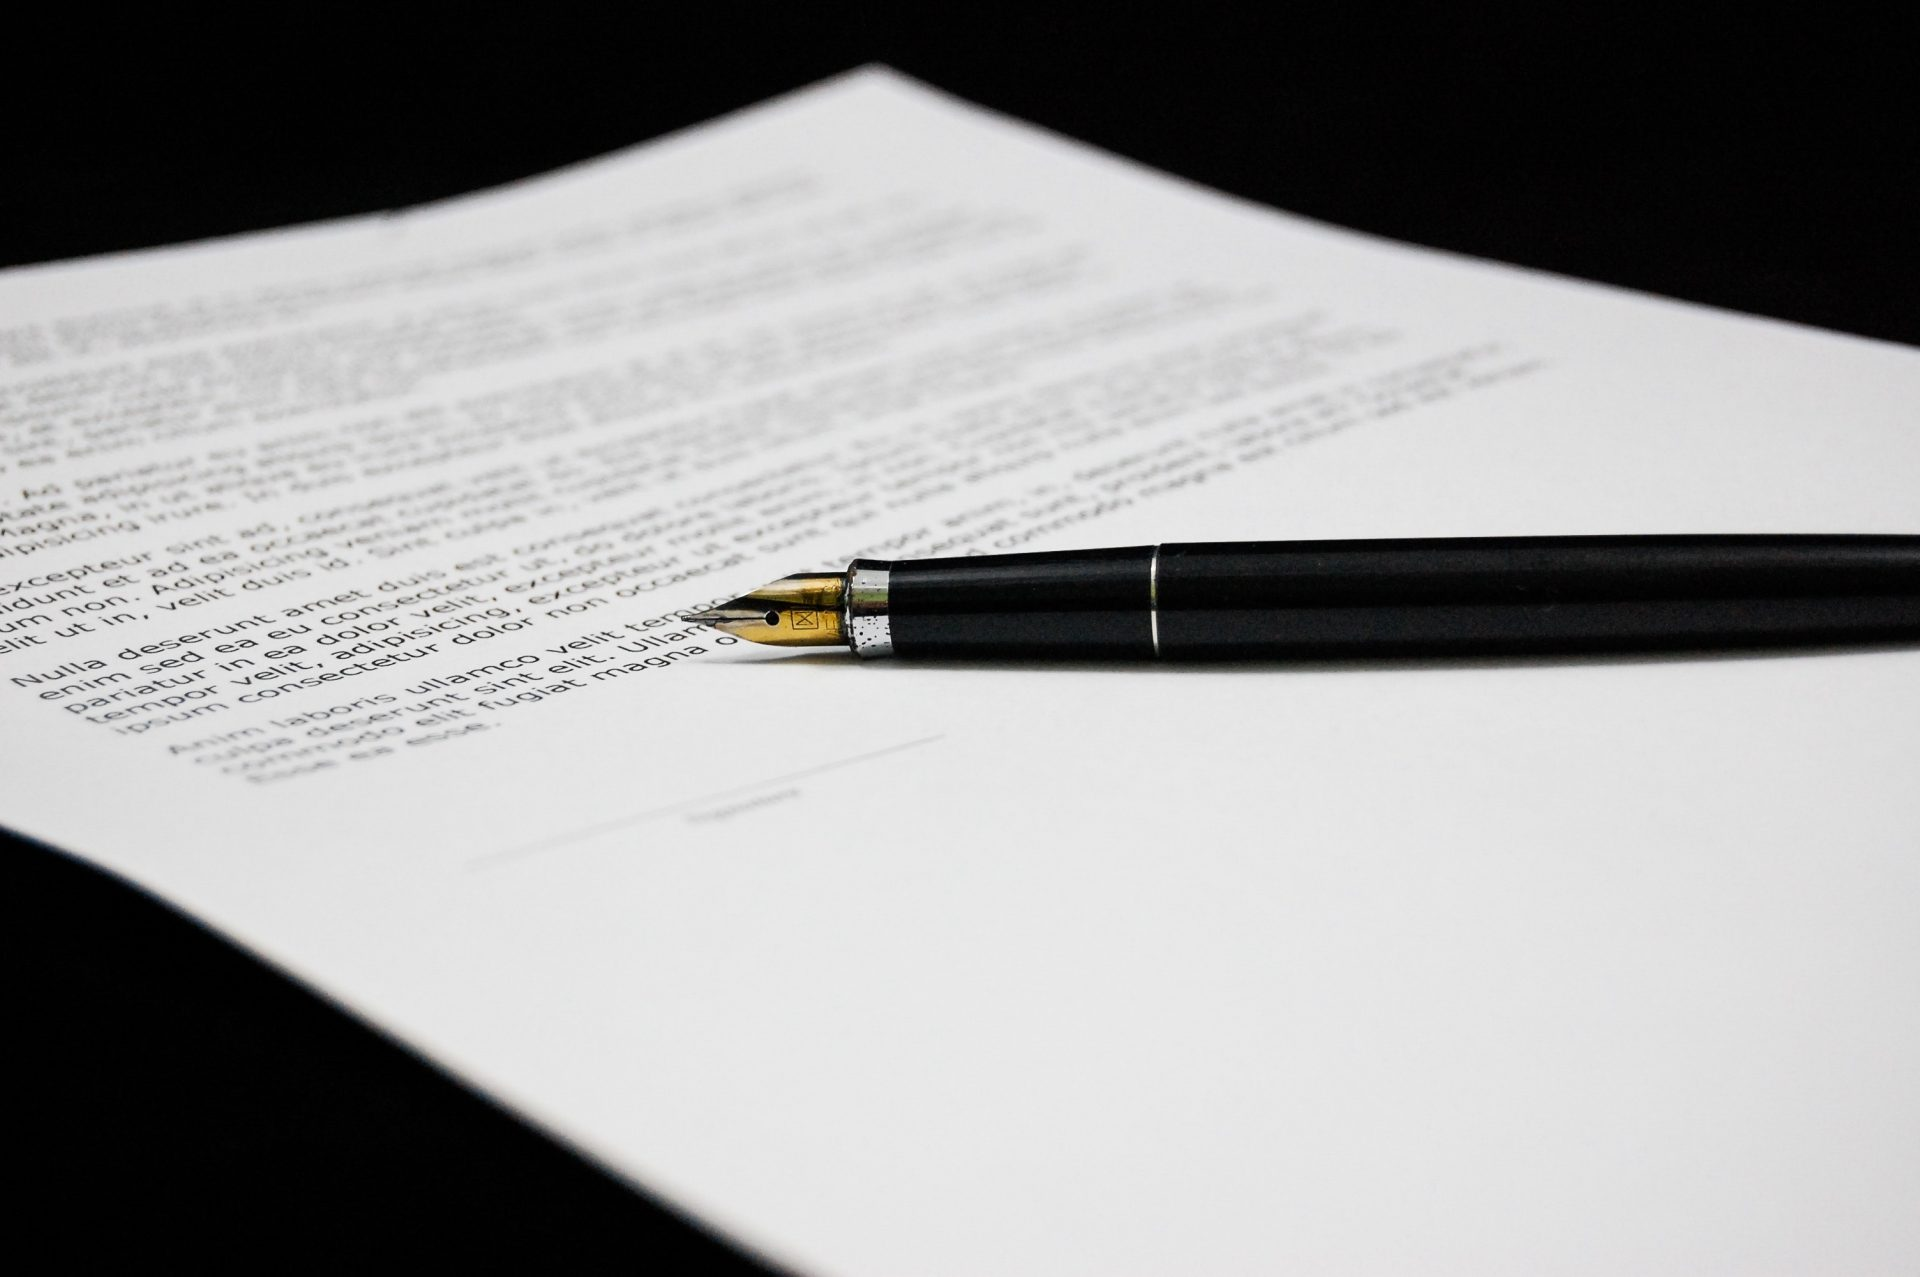 I'm Appointed As An Executor - What Are My Responsibilities?